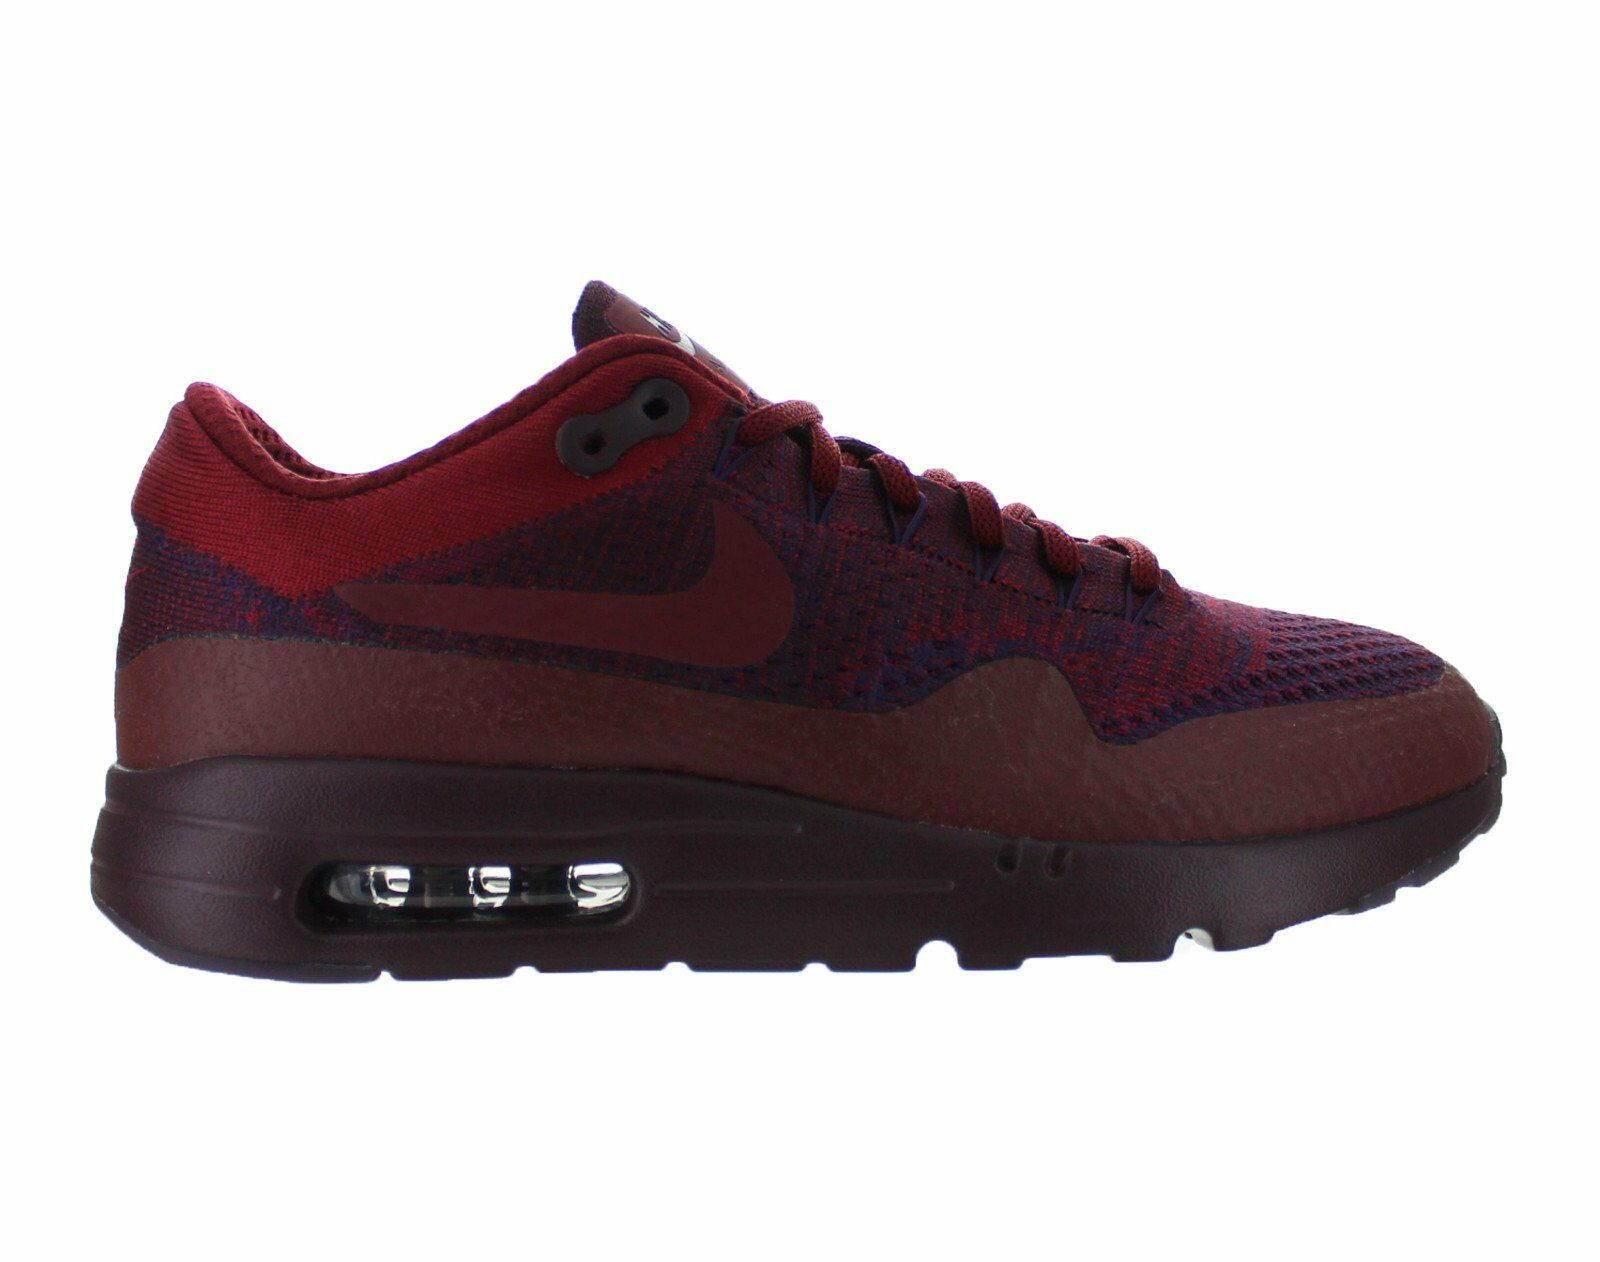 Homme Nike Air Max 1 Ultra Flyknit Deep Bourgogne Grand Violet équipe Rouge 856958-566